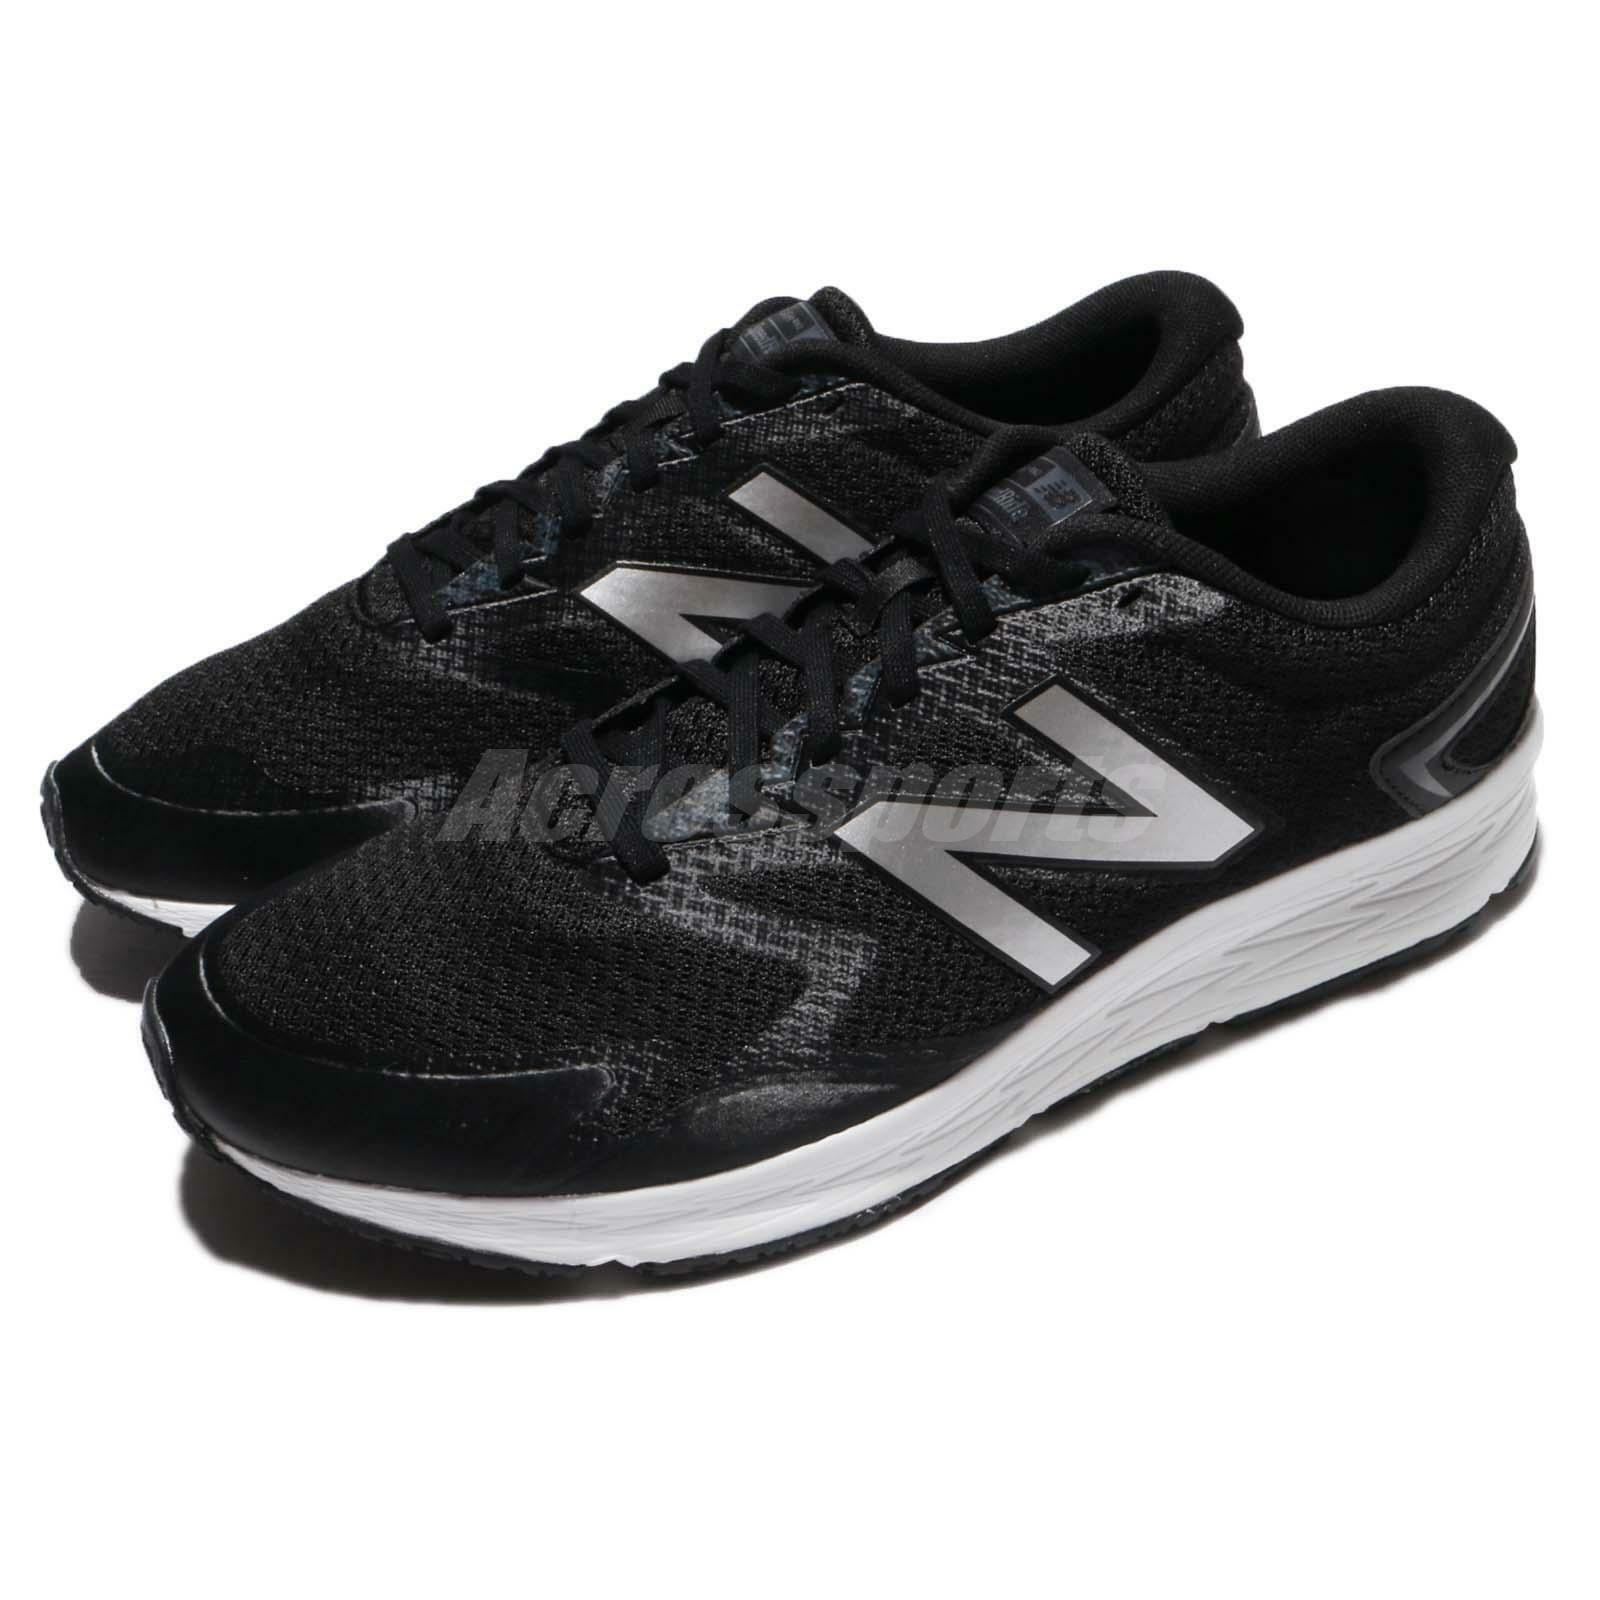 New Balance MFLSHLP2 D Black White Silver Men Running shoes Trainers MFLSHLP2D